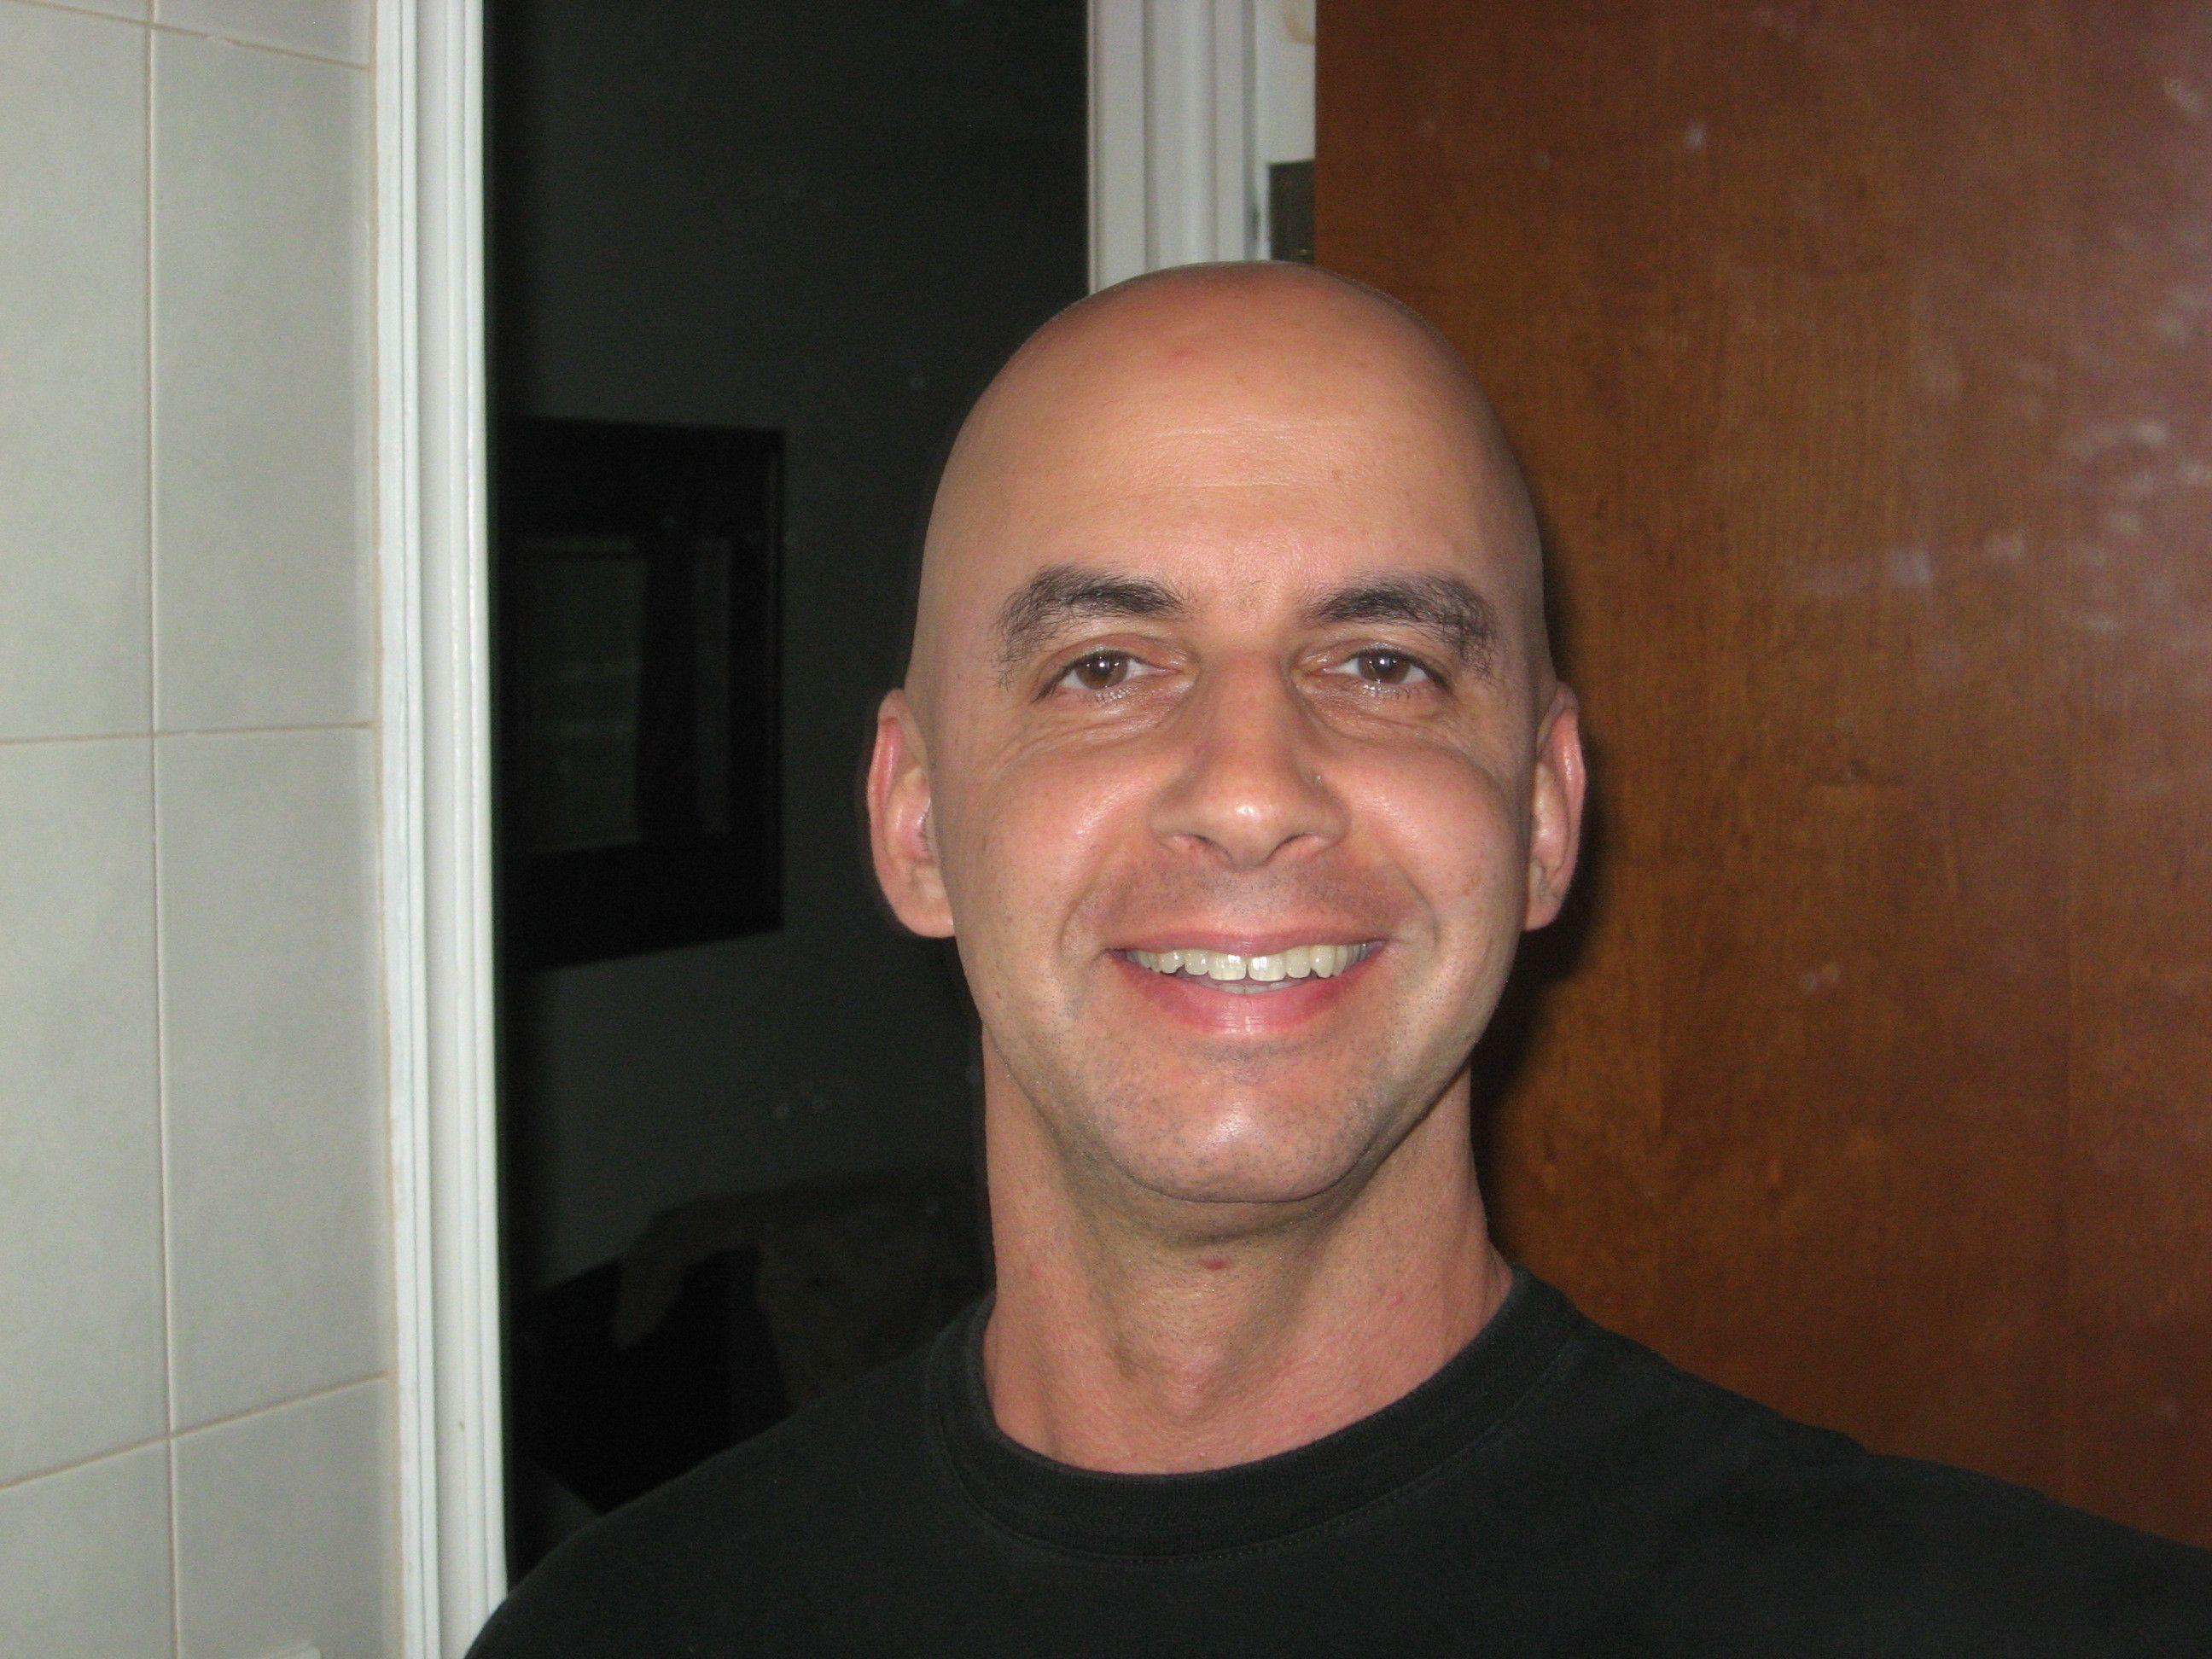 millstone black women dating site 48 year old woman from east millstone, new jersey looking for man for dating last seen within the last four days.